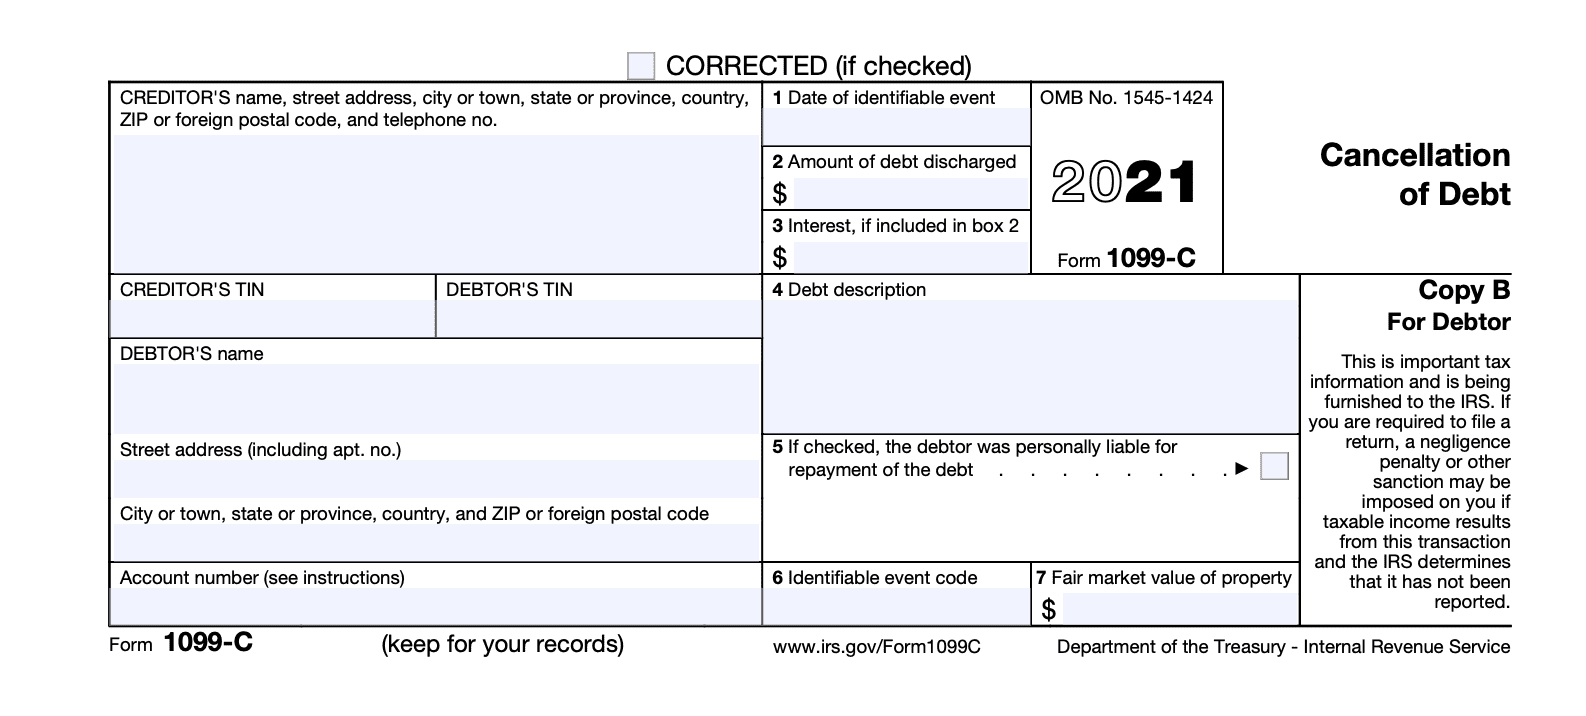 IRS Form 1099-C Cancellation of Debt